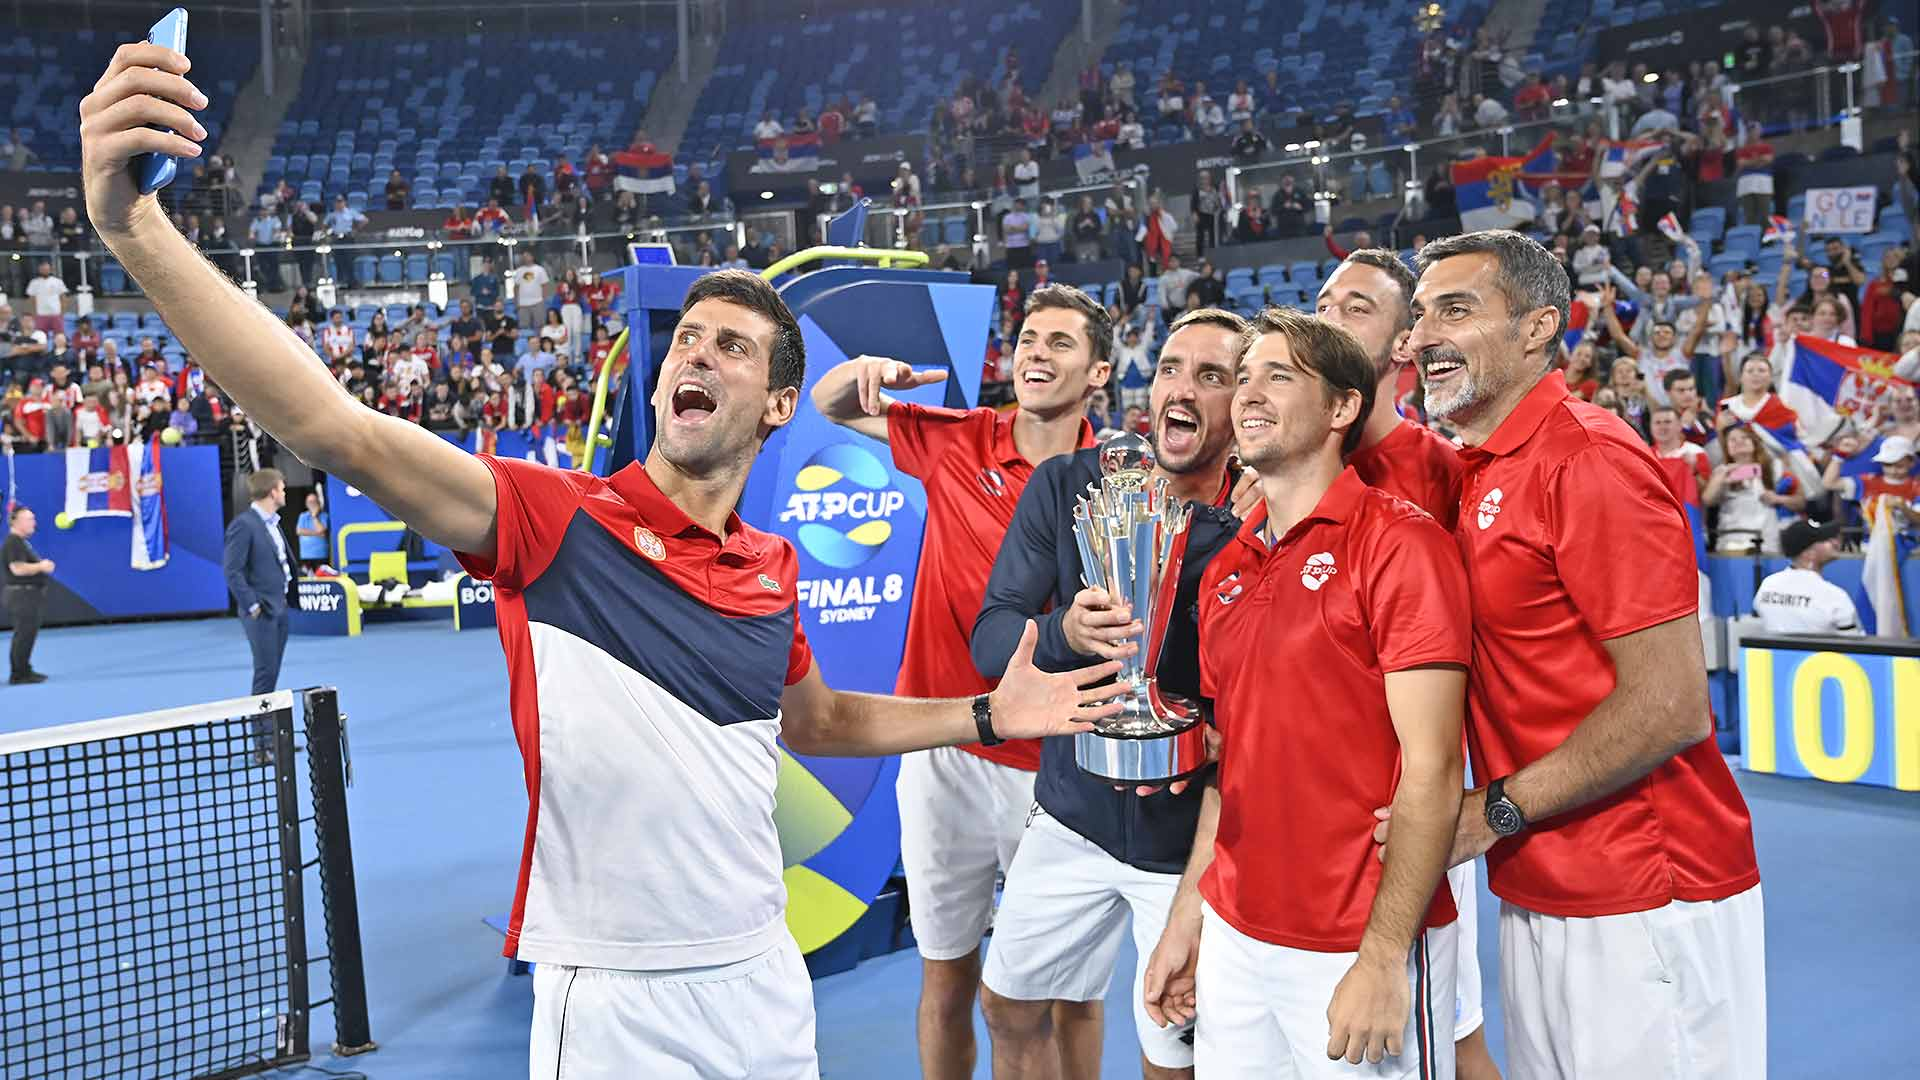 Team Serbia celebrates after beating Team Spain 2-1 to win the ATP Cup.